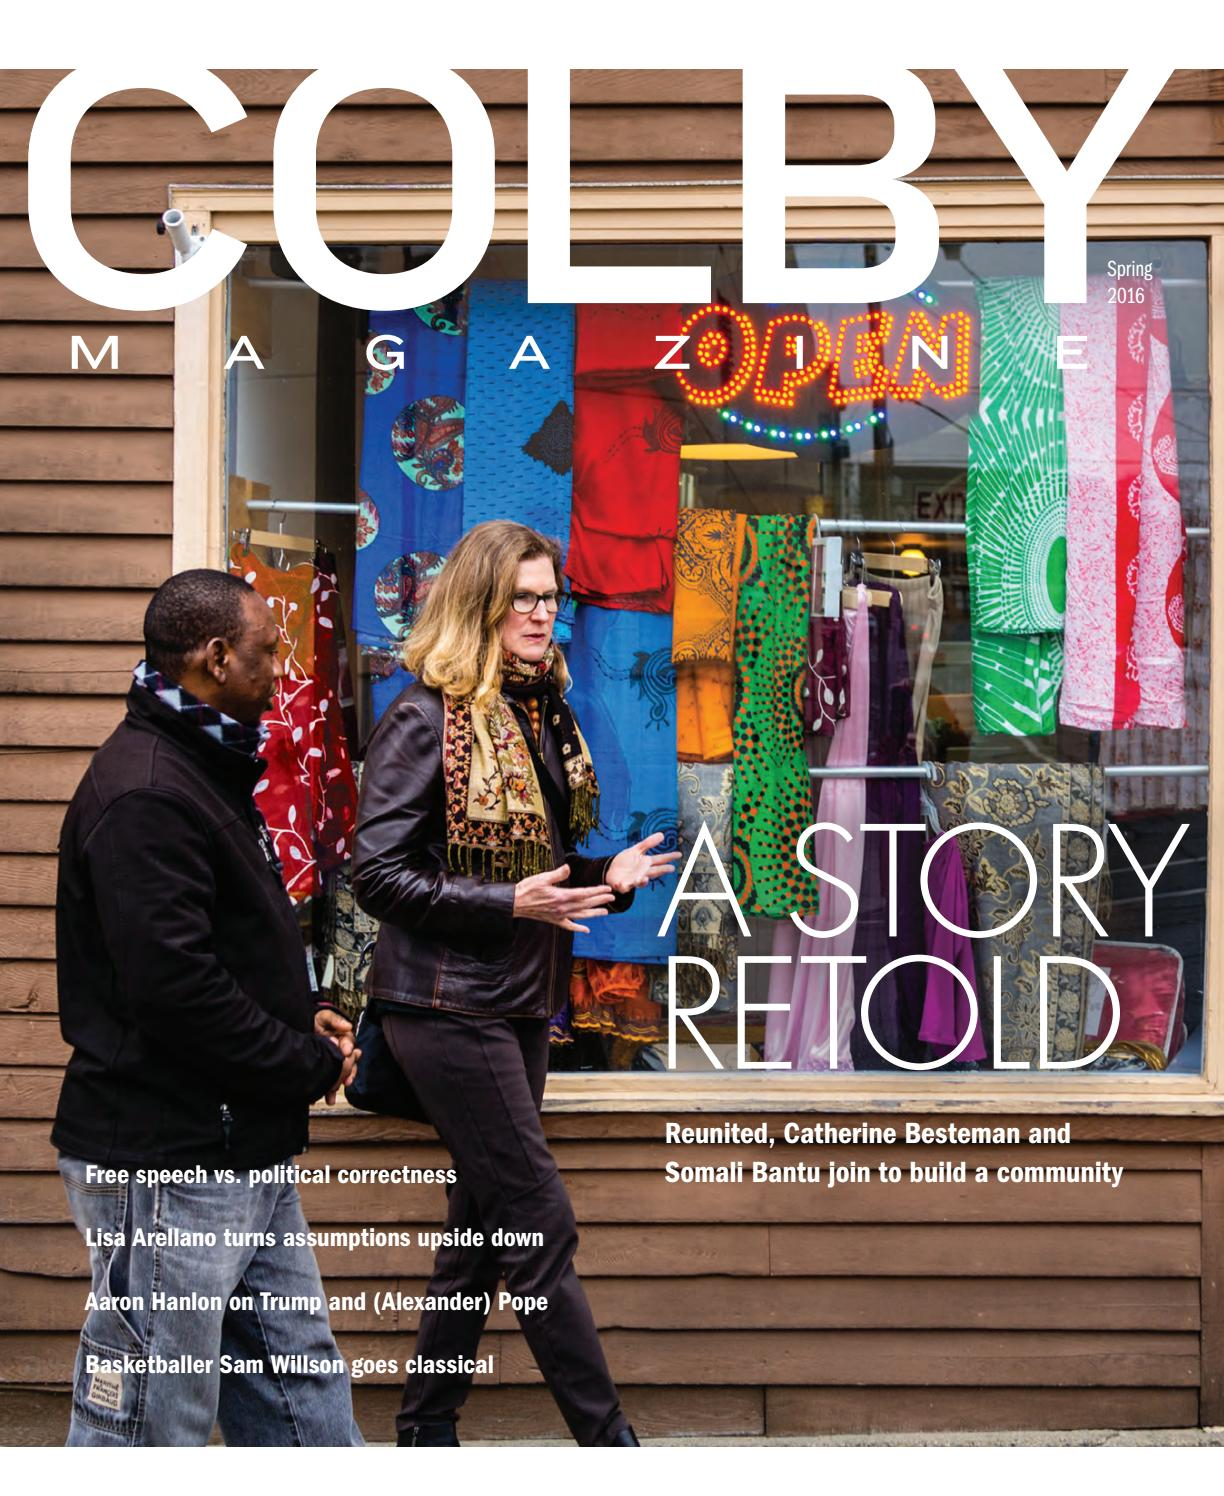 Colby Magazine vol  104, no  3 by Colby College Libraries